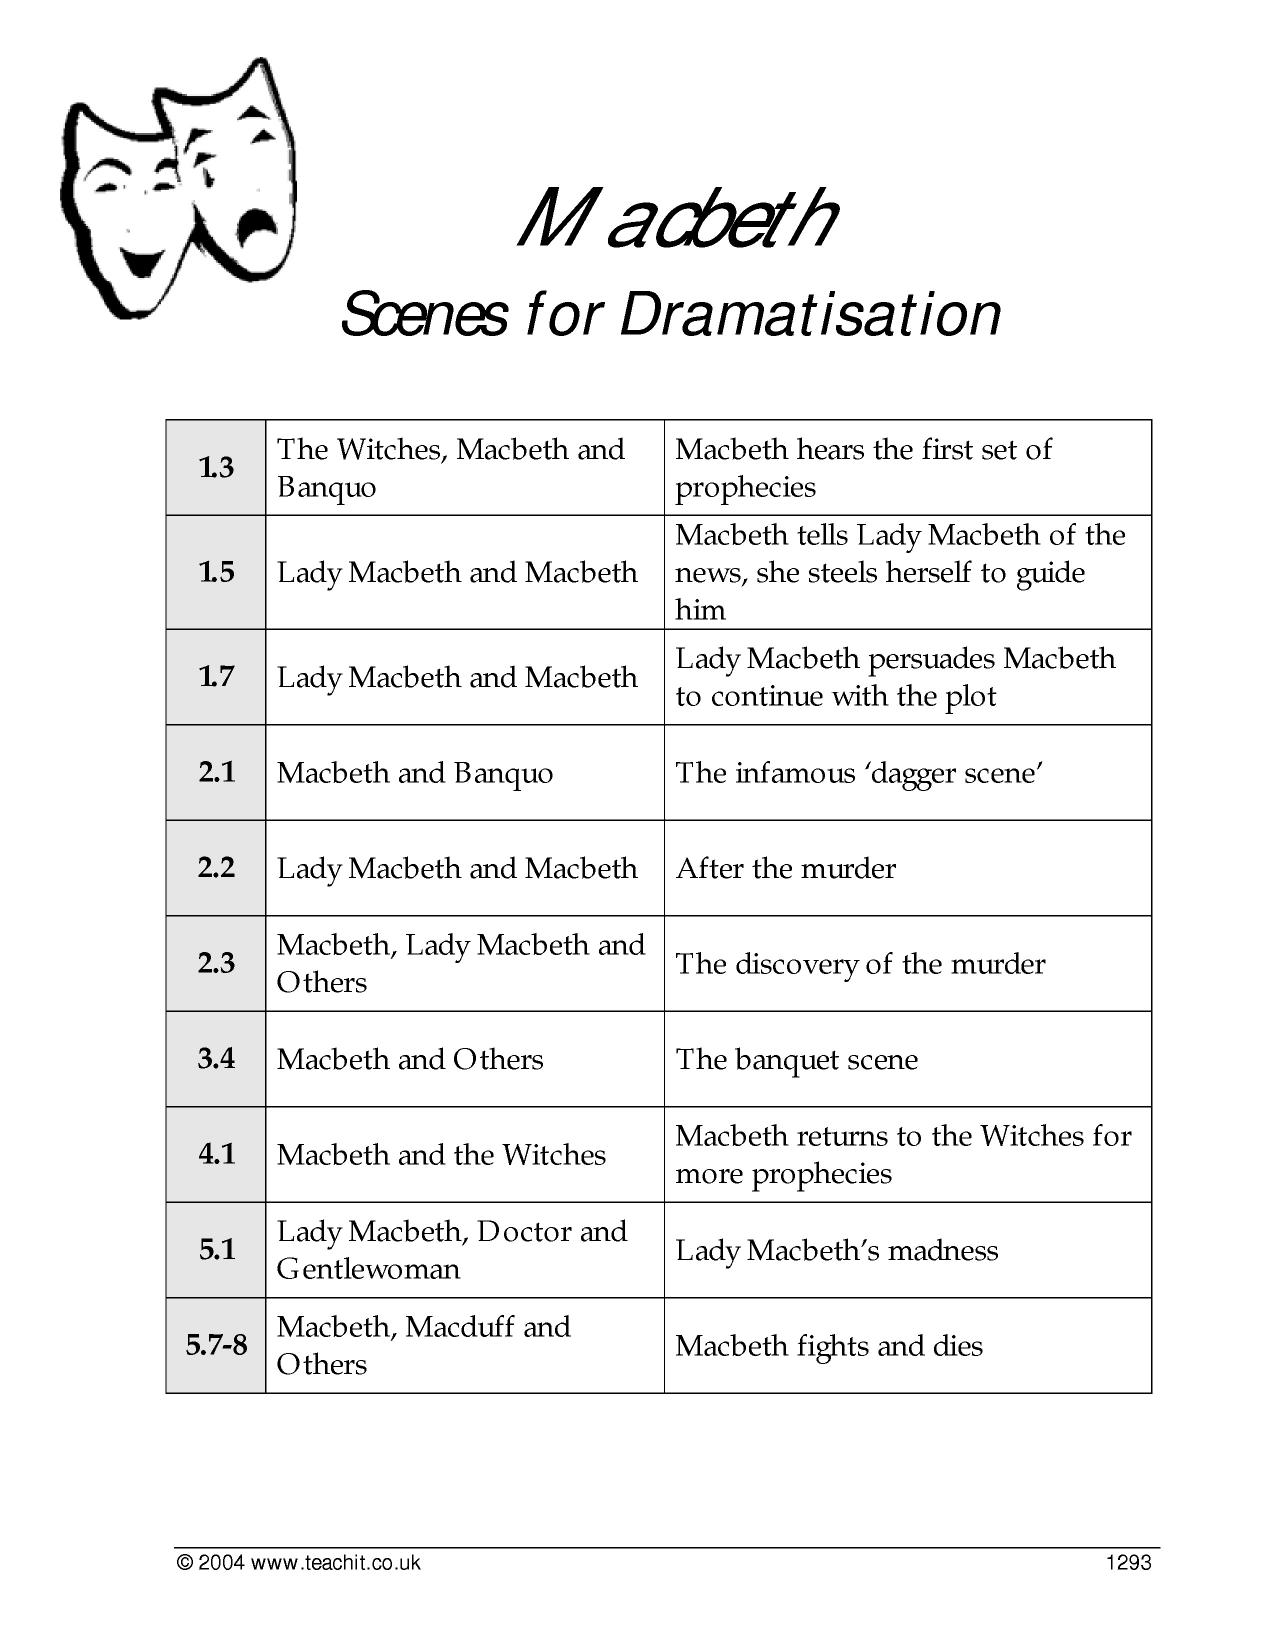 an examination of the character of macbeth 2018-7-13 english literature exemplars paper 1 shakespeare  explore how shakespeare presents the character of lady macbeth as being in control in this extract.